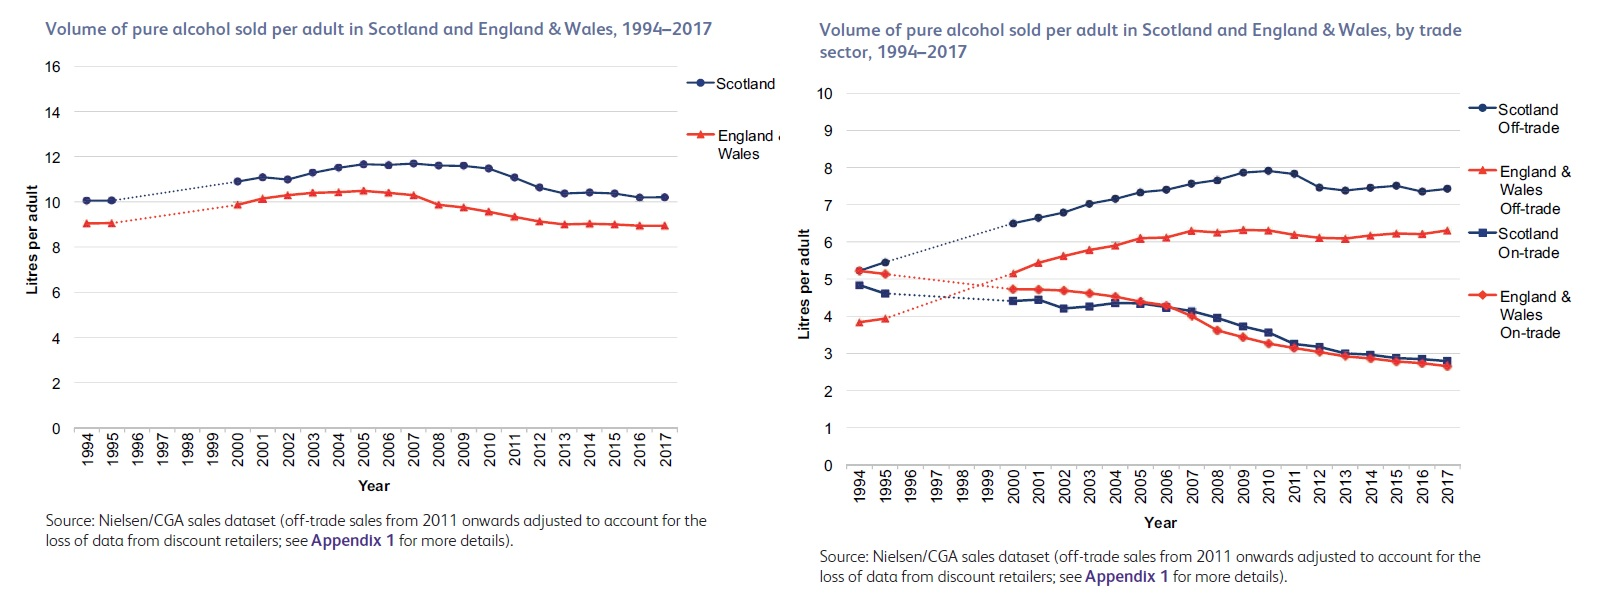 Consumption Mesas Alcohol Flat Trend 2018 Uk Policy -